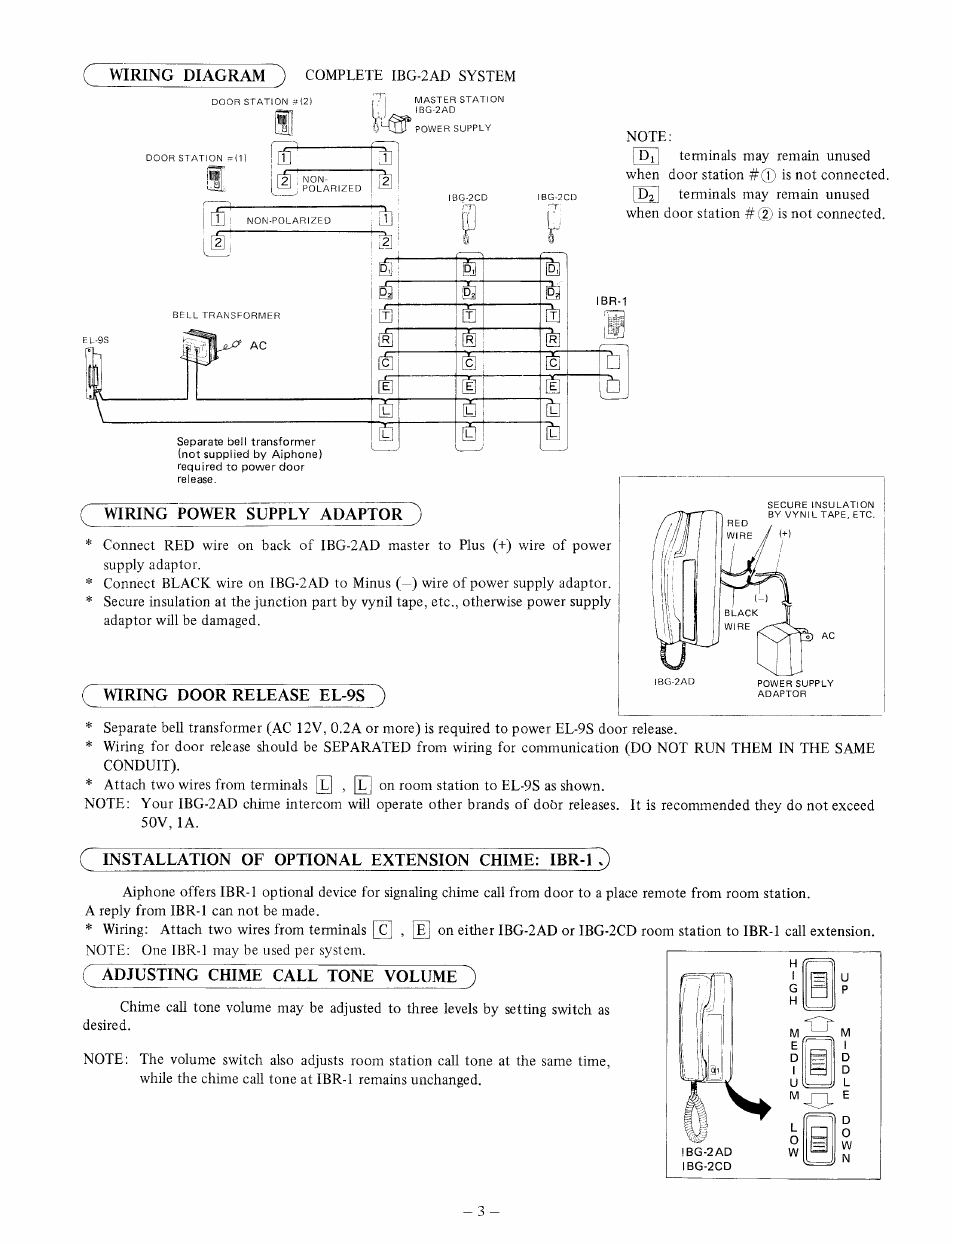 hight resolution of wiring power supply adaptor wiring door release el 9s installation of optional extension chime ibrtq aiphone ibg 2ad user manual page 3 4